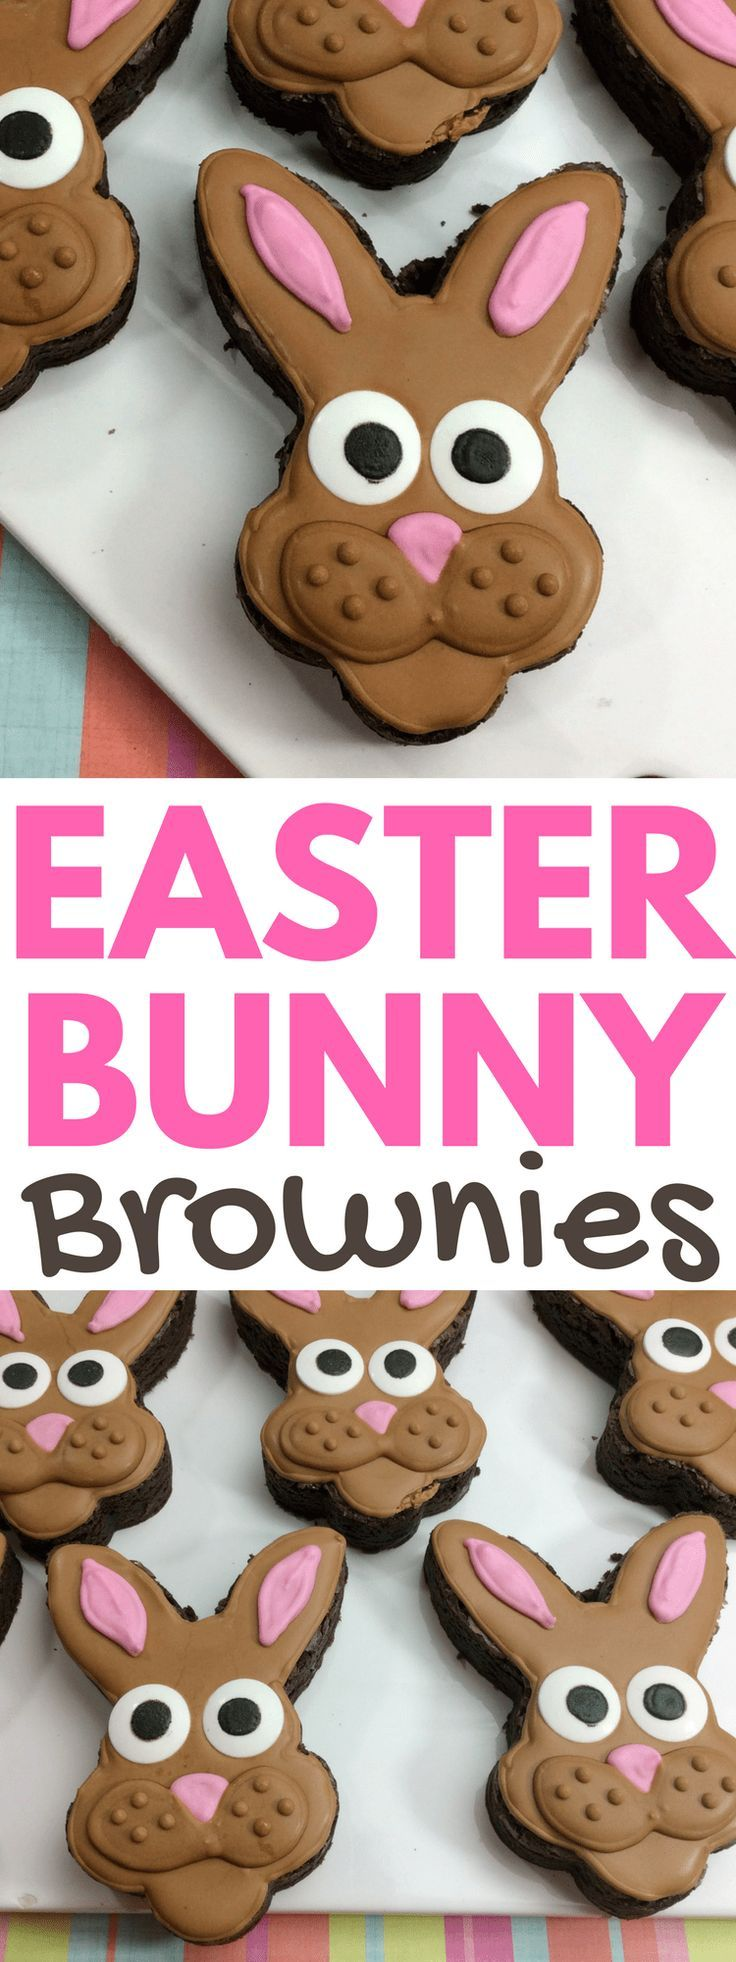 """""""The perfect Easter dessert recipe are these adorable Easter bunny brownies. Great for putting in a kids Easter basket or as a sweet treat after the Easter egg hunt. #Easter #EasterDessert #EasterRecipes #ForModernKids"""